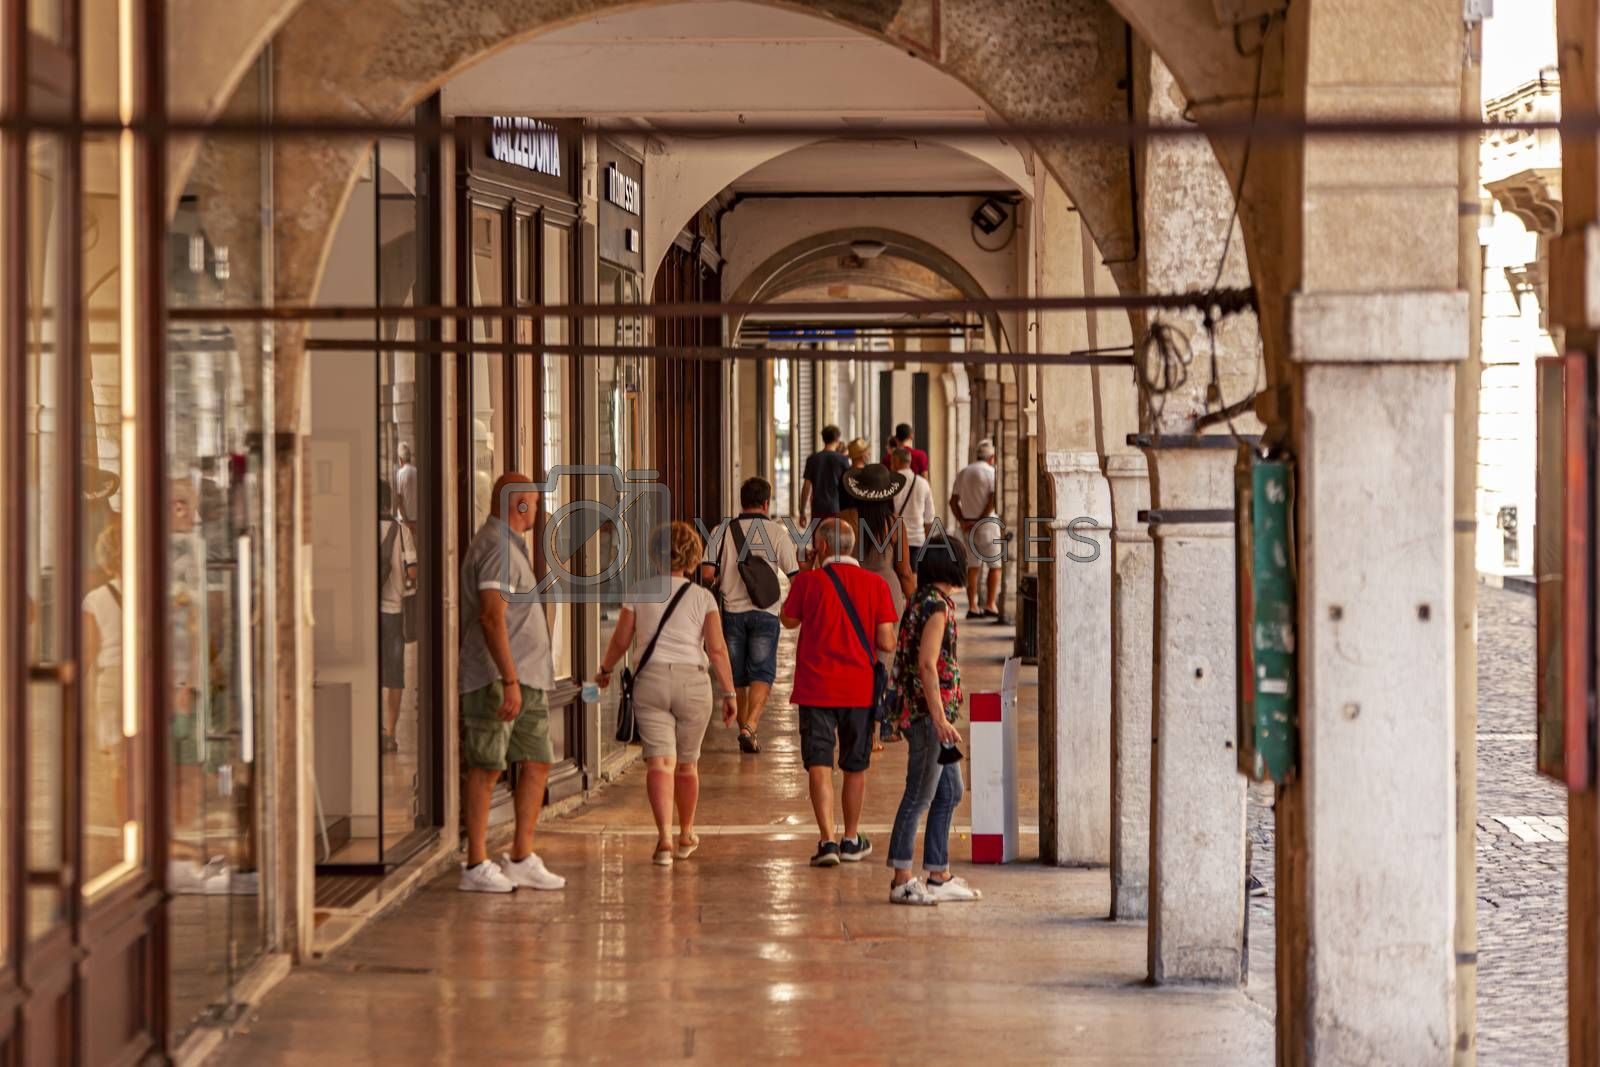 TREVISO, ITALY 13 AUGUST 2020: People walking on arcades in Treviso in Italy